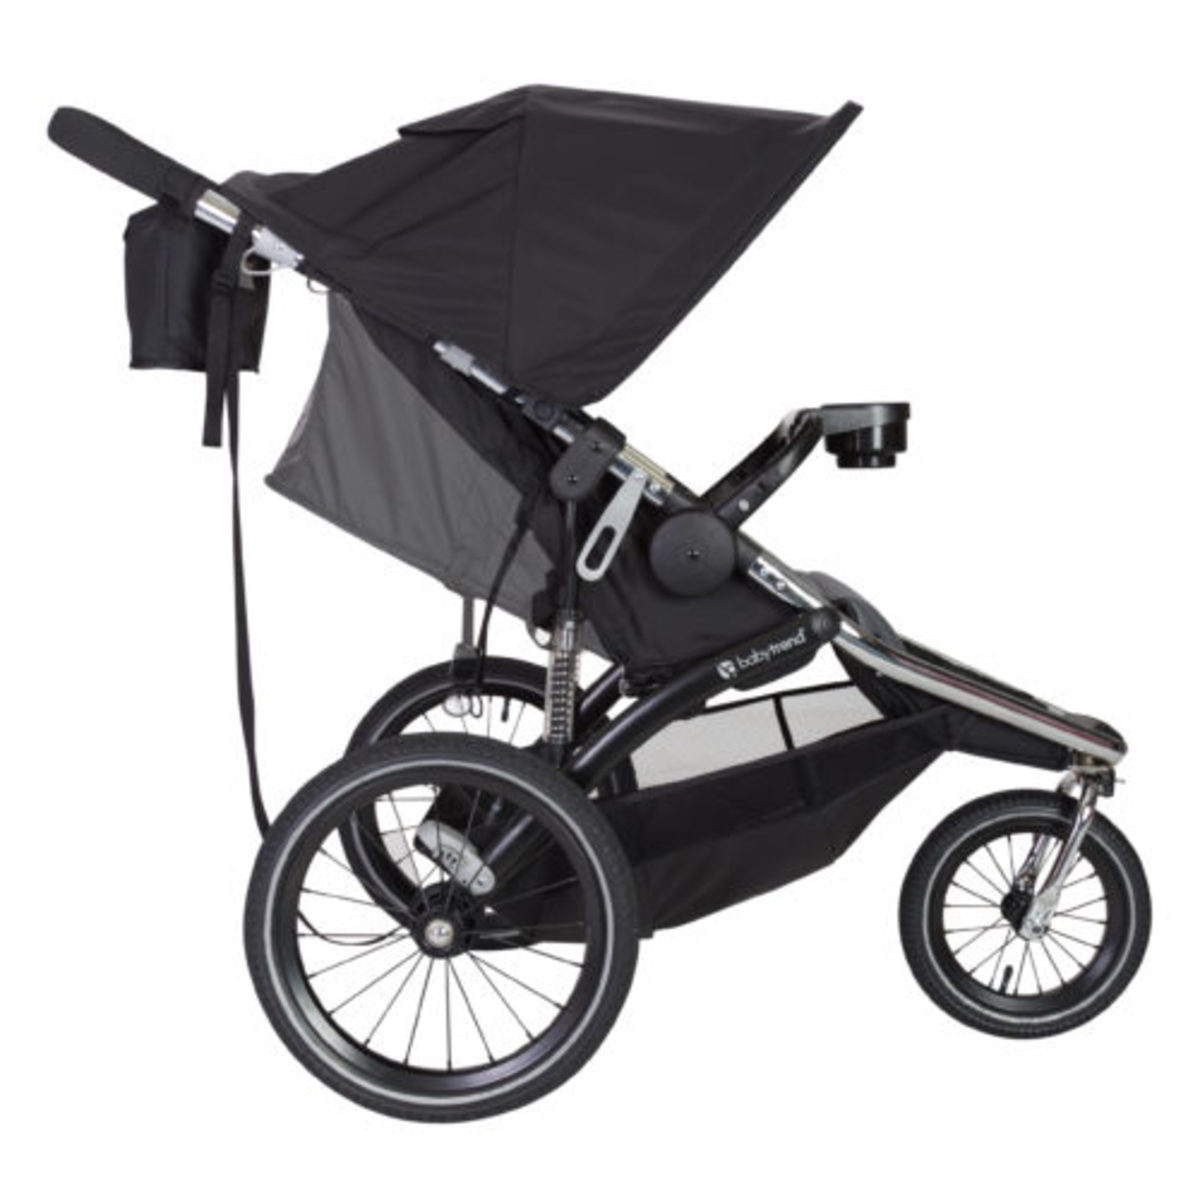 The best jogging stroller is the babytrend falcon jogger